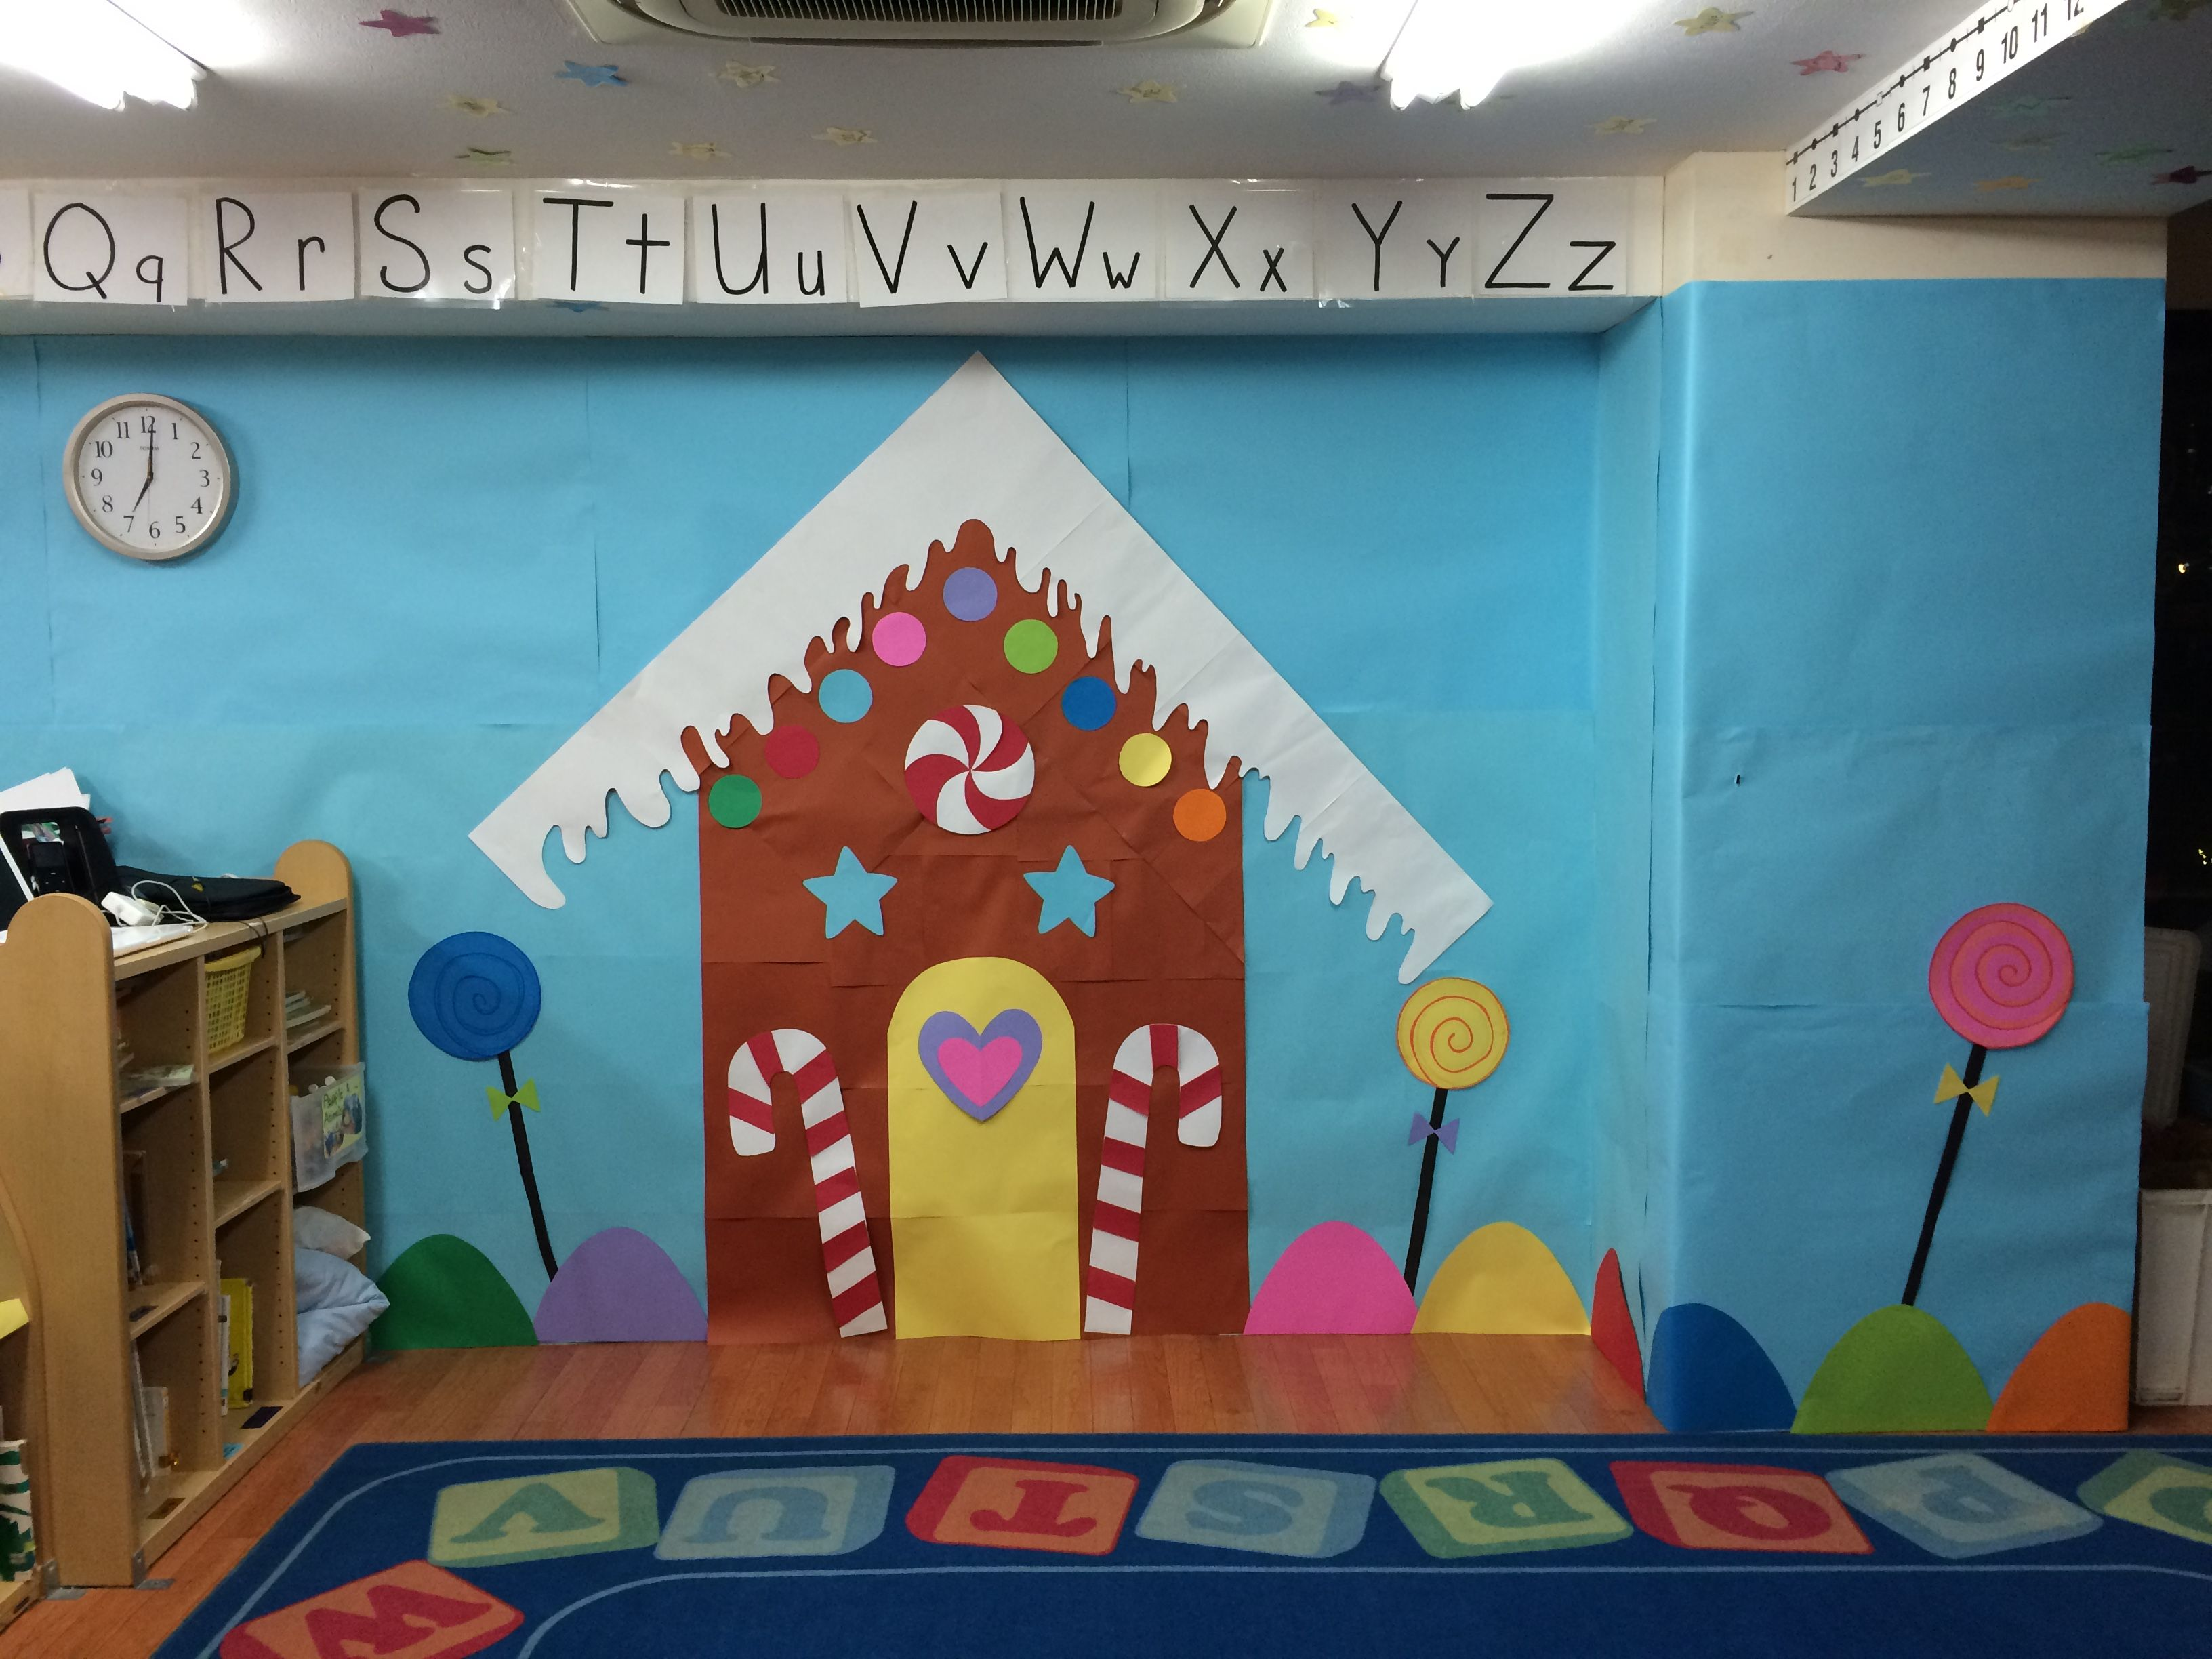 School Wall decorations to make our class room bright with the Christmas  spirit! The gingerbread